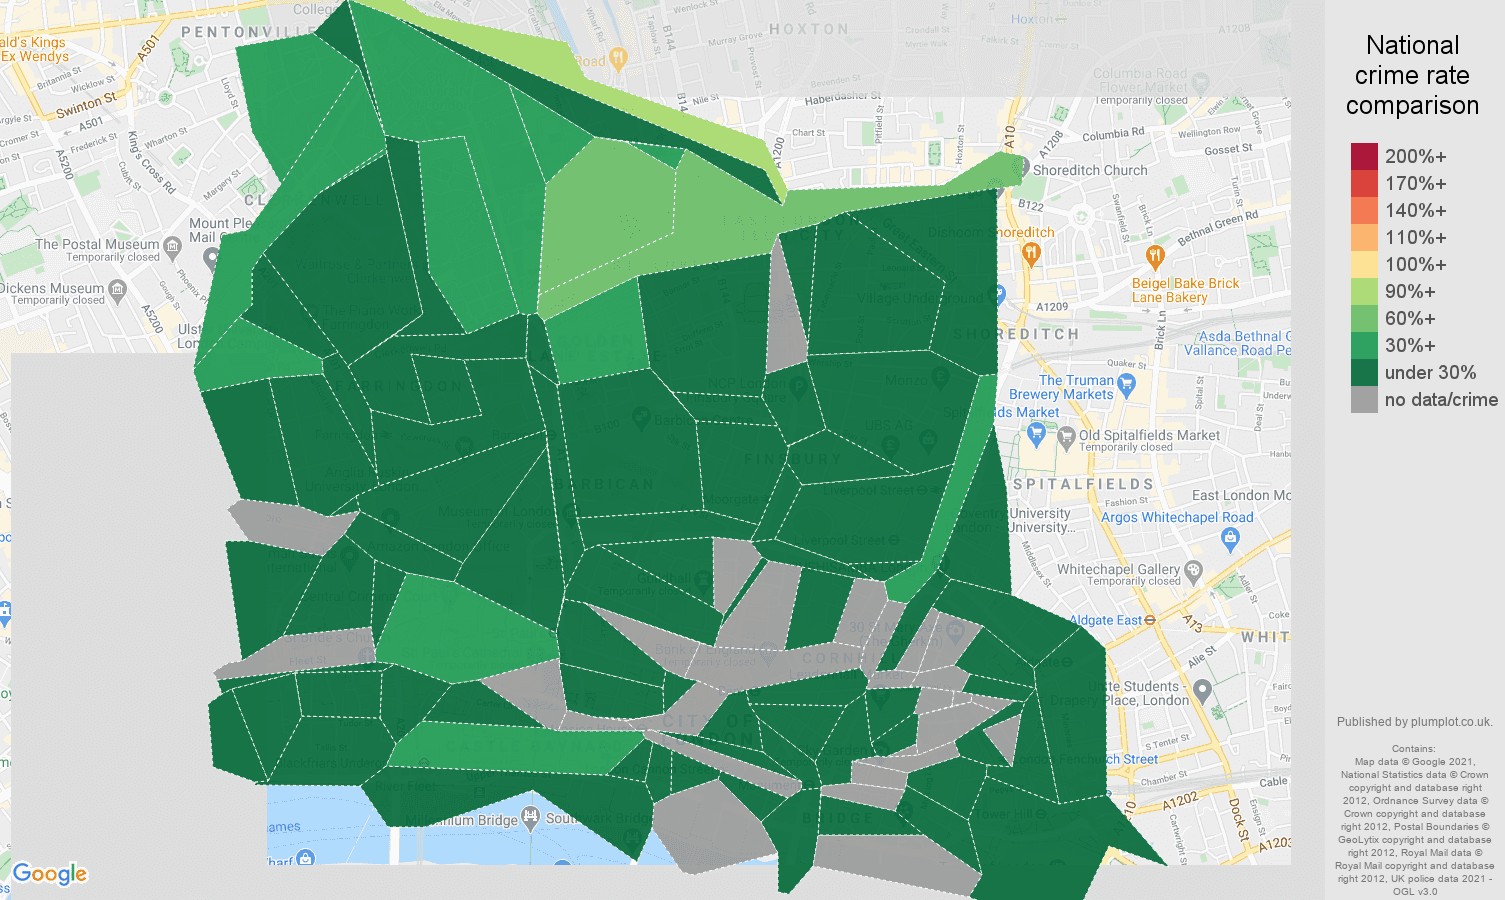 East Central London violent crime rate comparison map